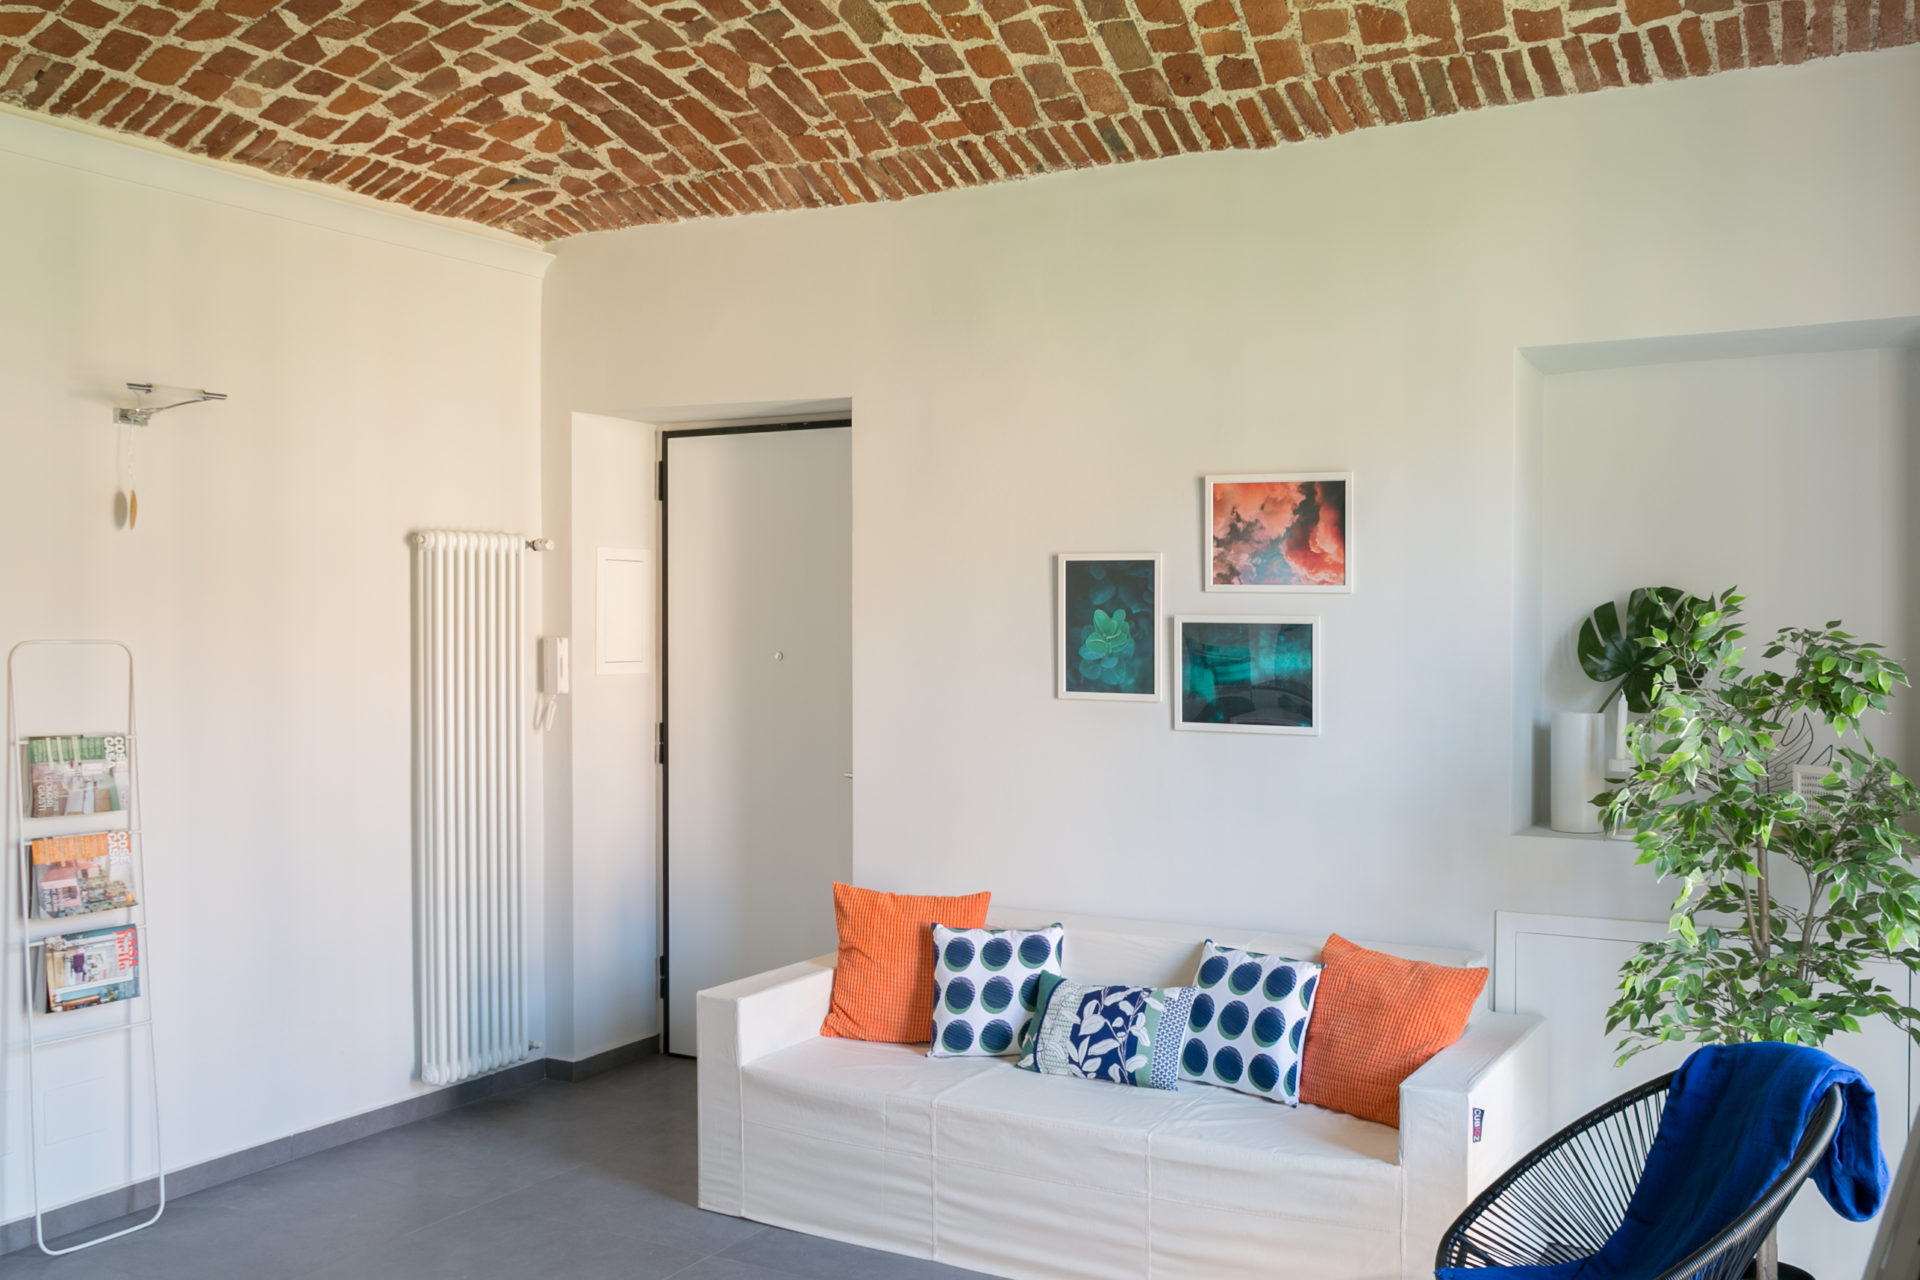 homeonstage-home-staging-casa-frejus_13